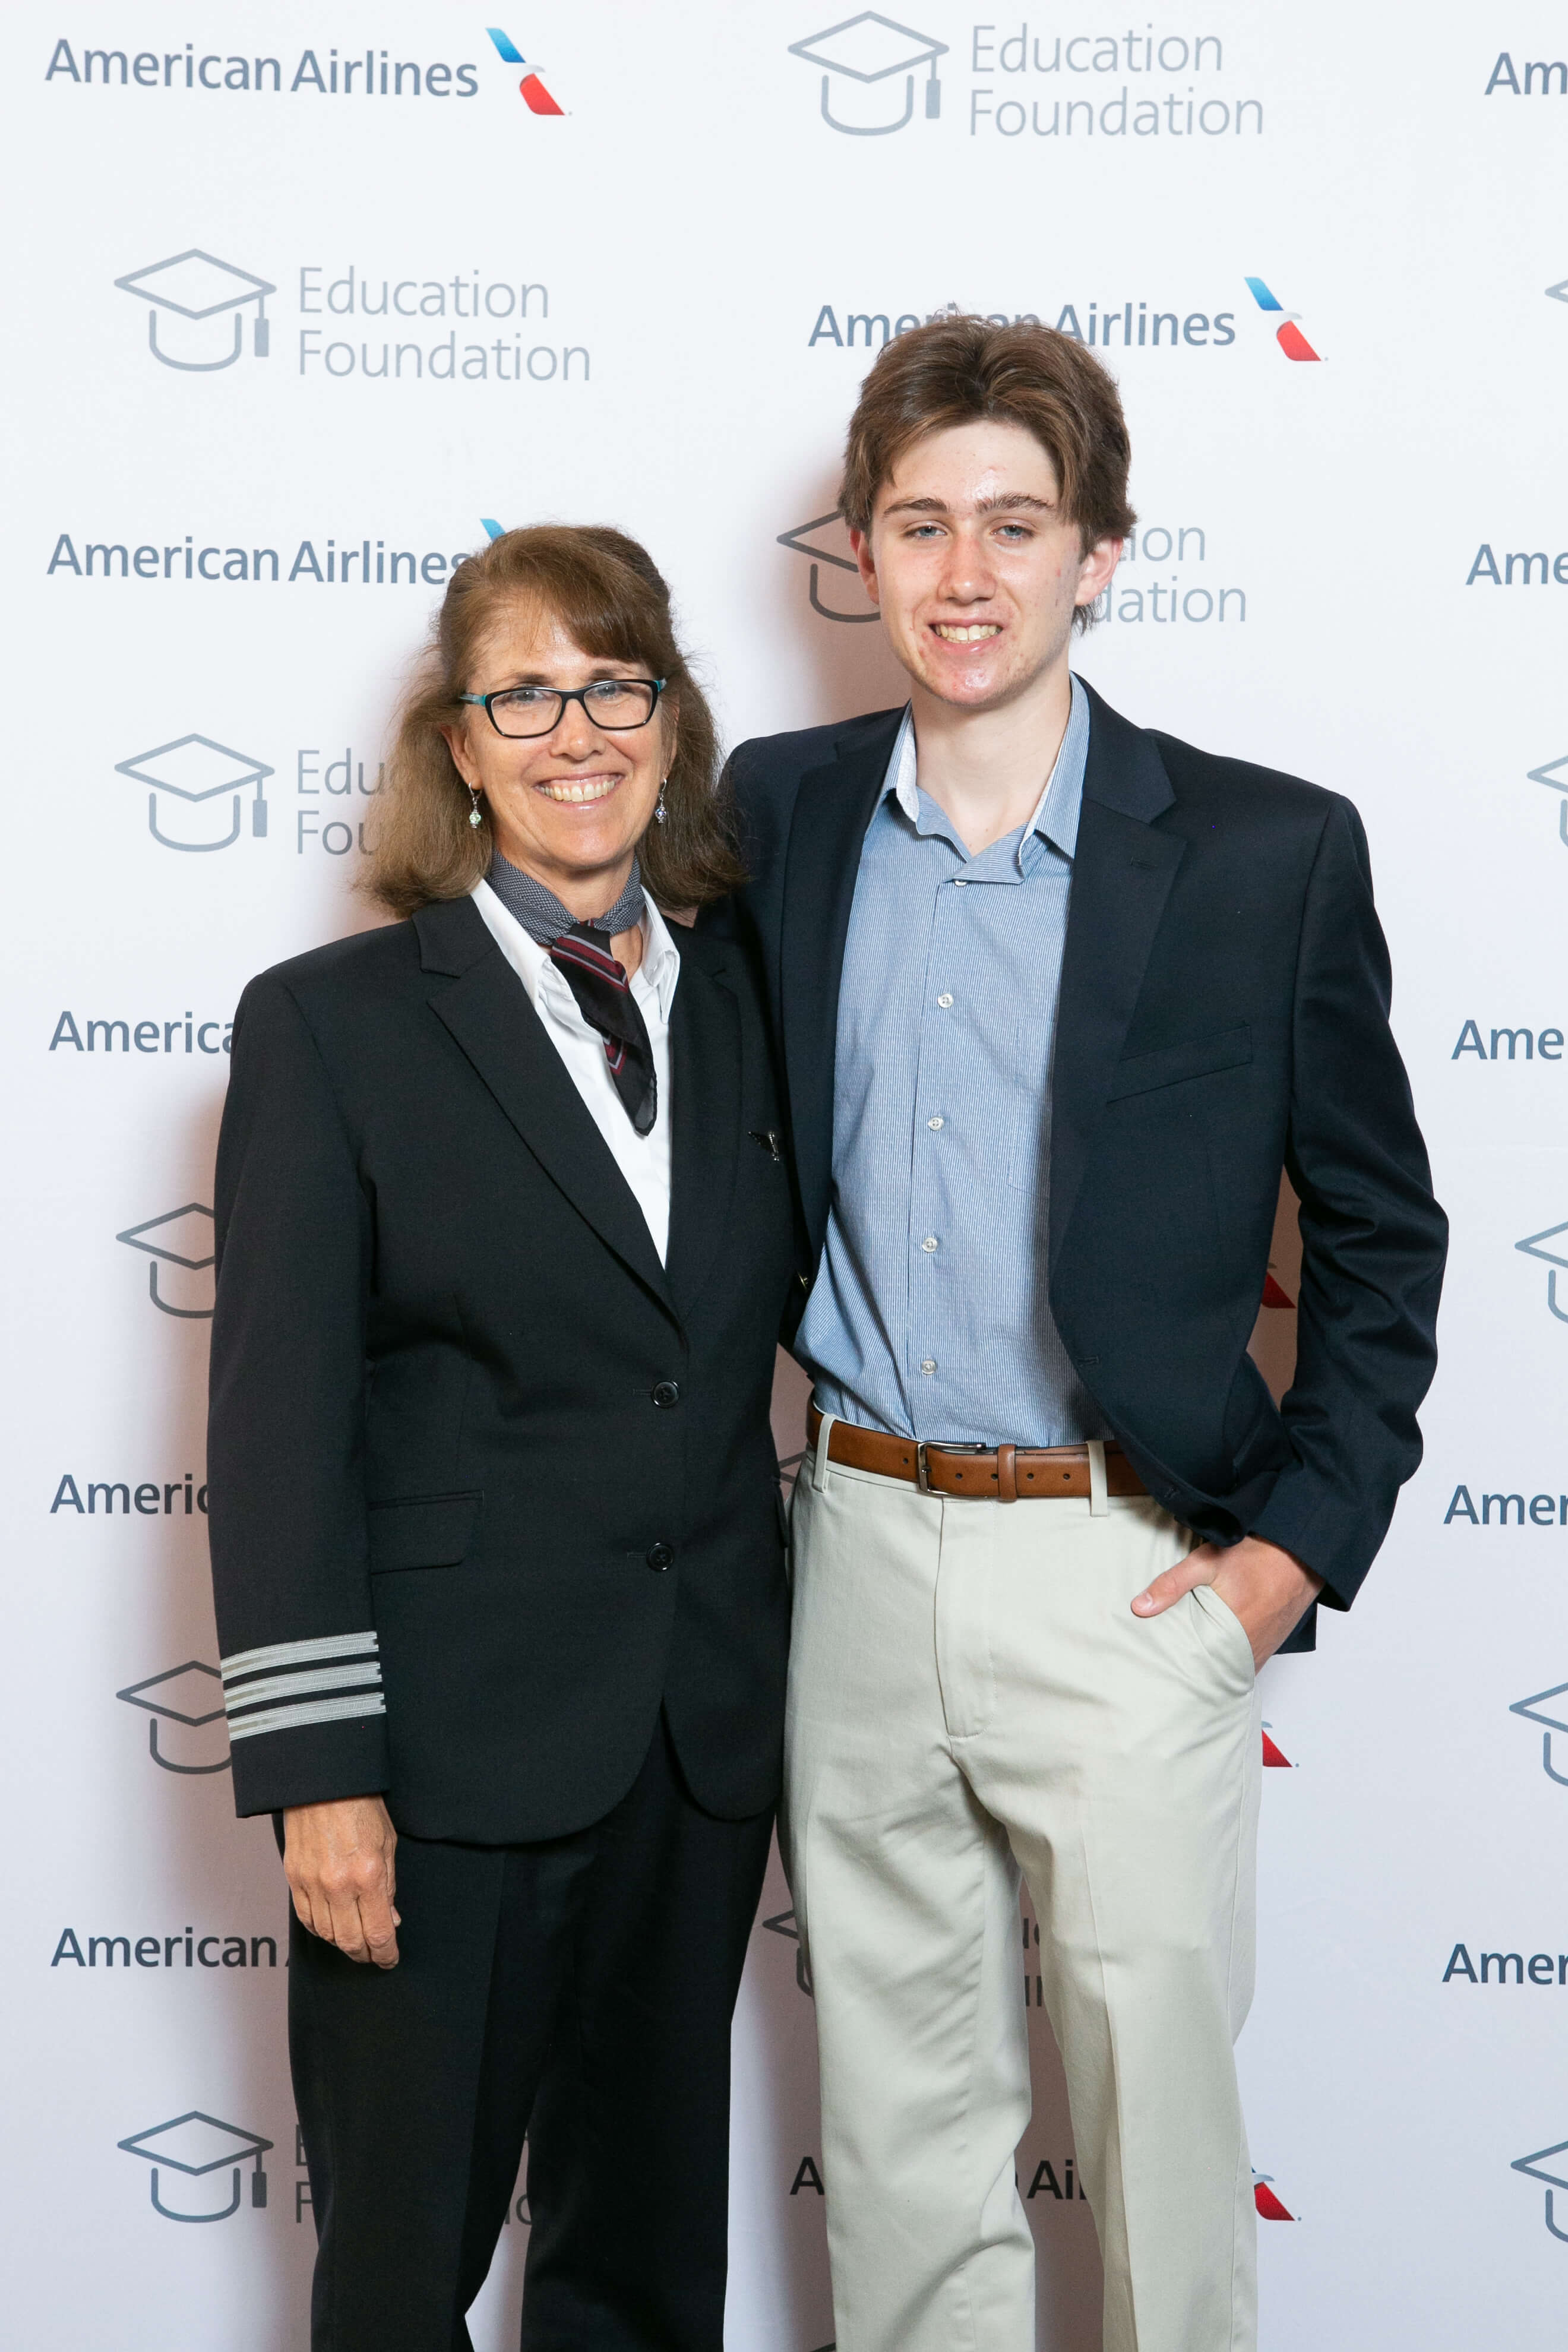 Nora Ellis and her son Sam at this year's Education Foundation Scholarship Reception